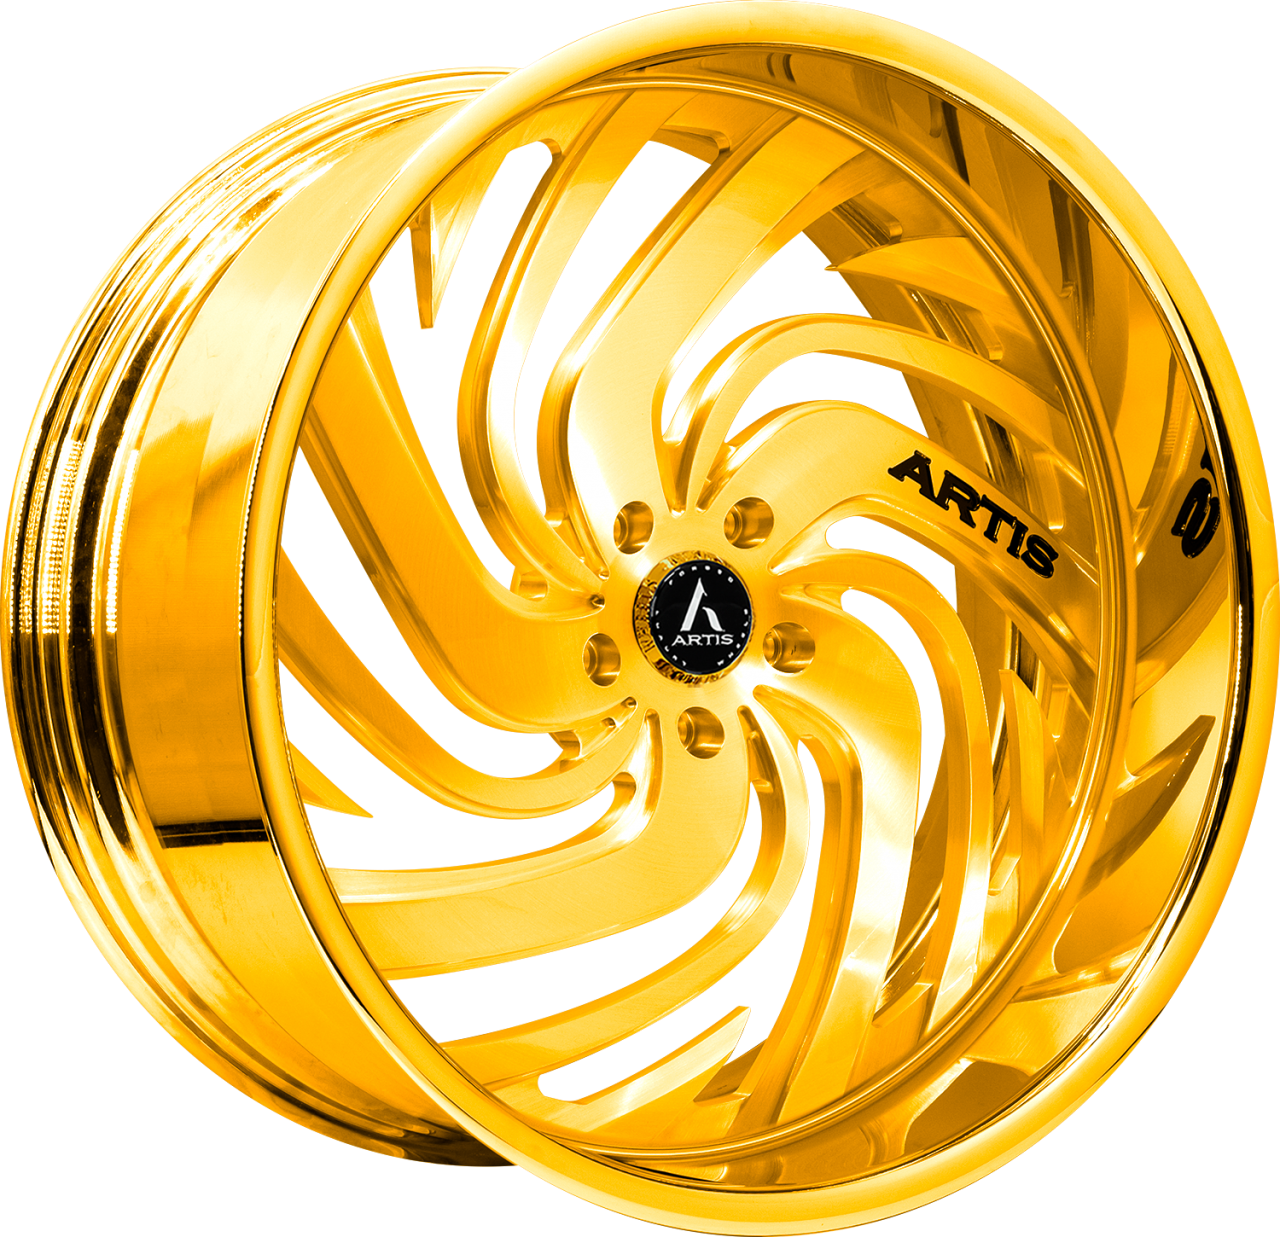 Artis Forged Fillmore-M wheel with Gold finish